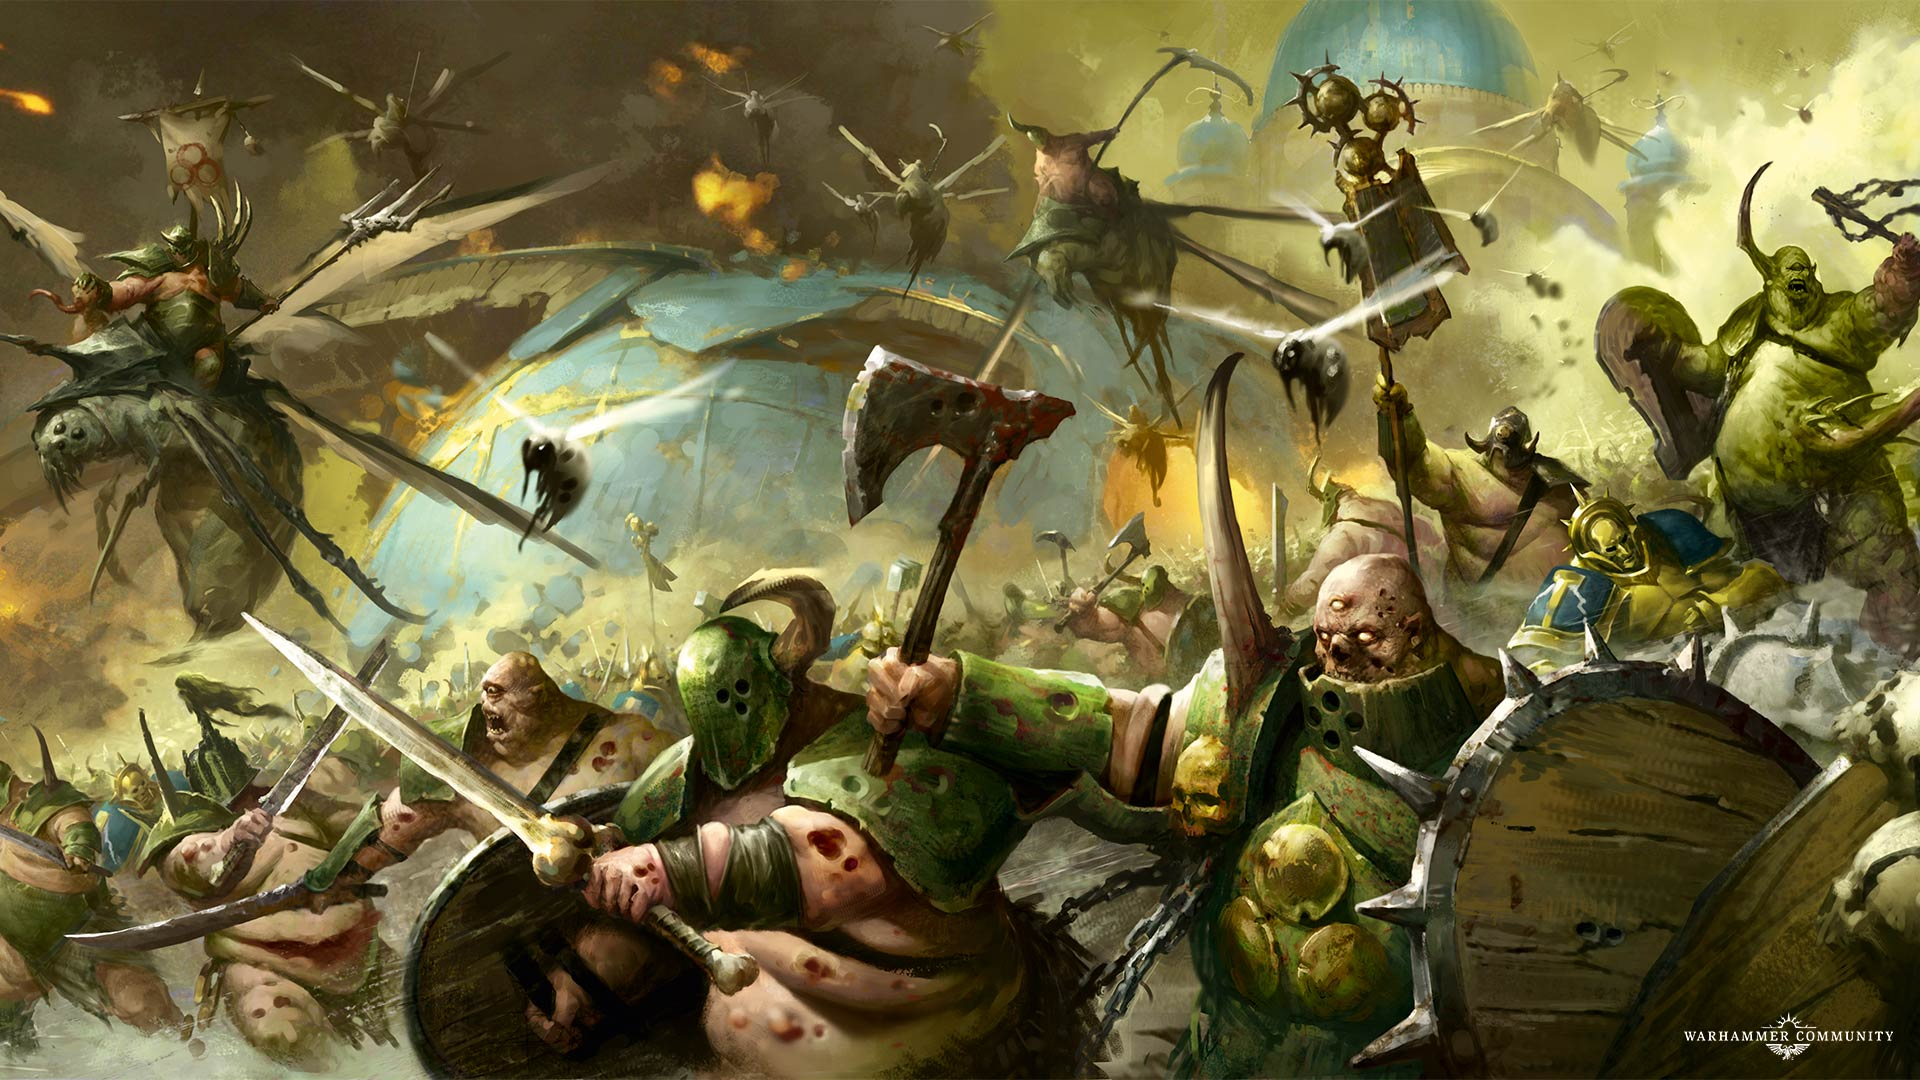 Nurgle's worshippers